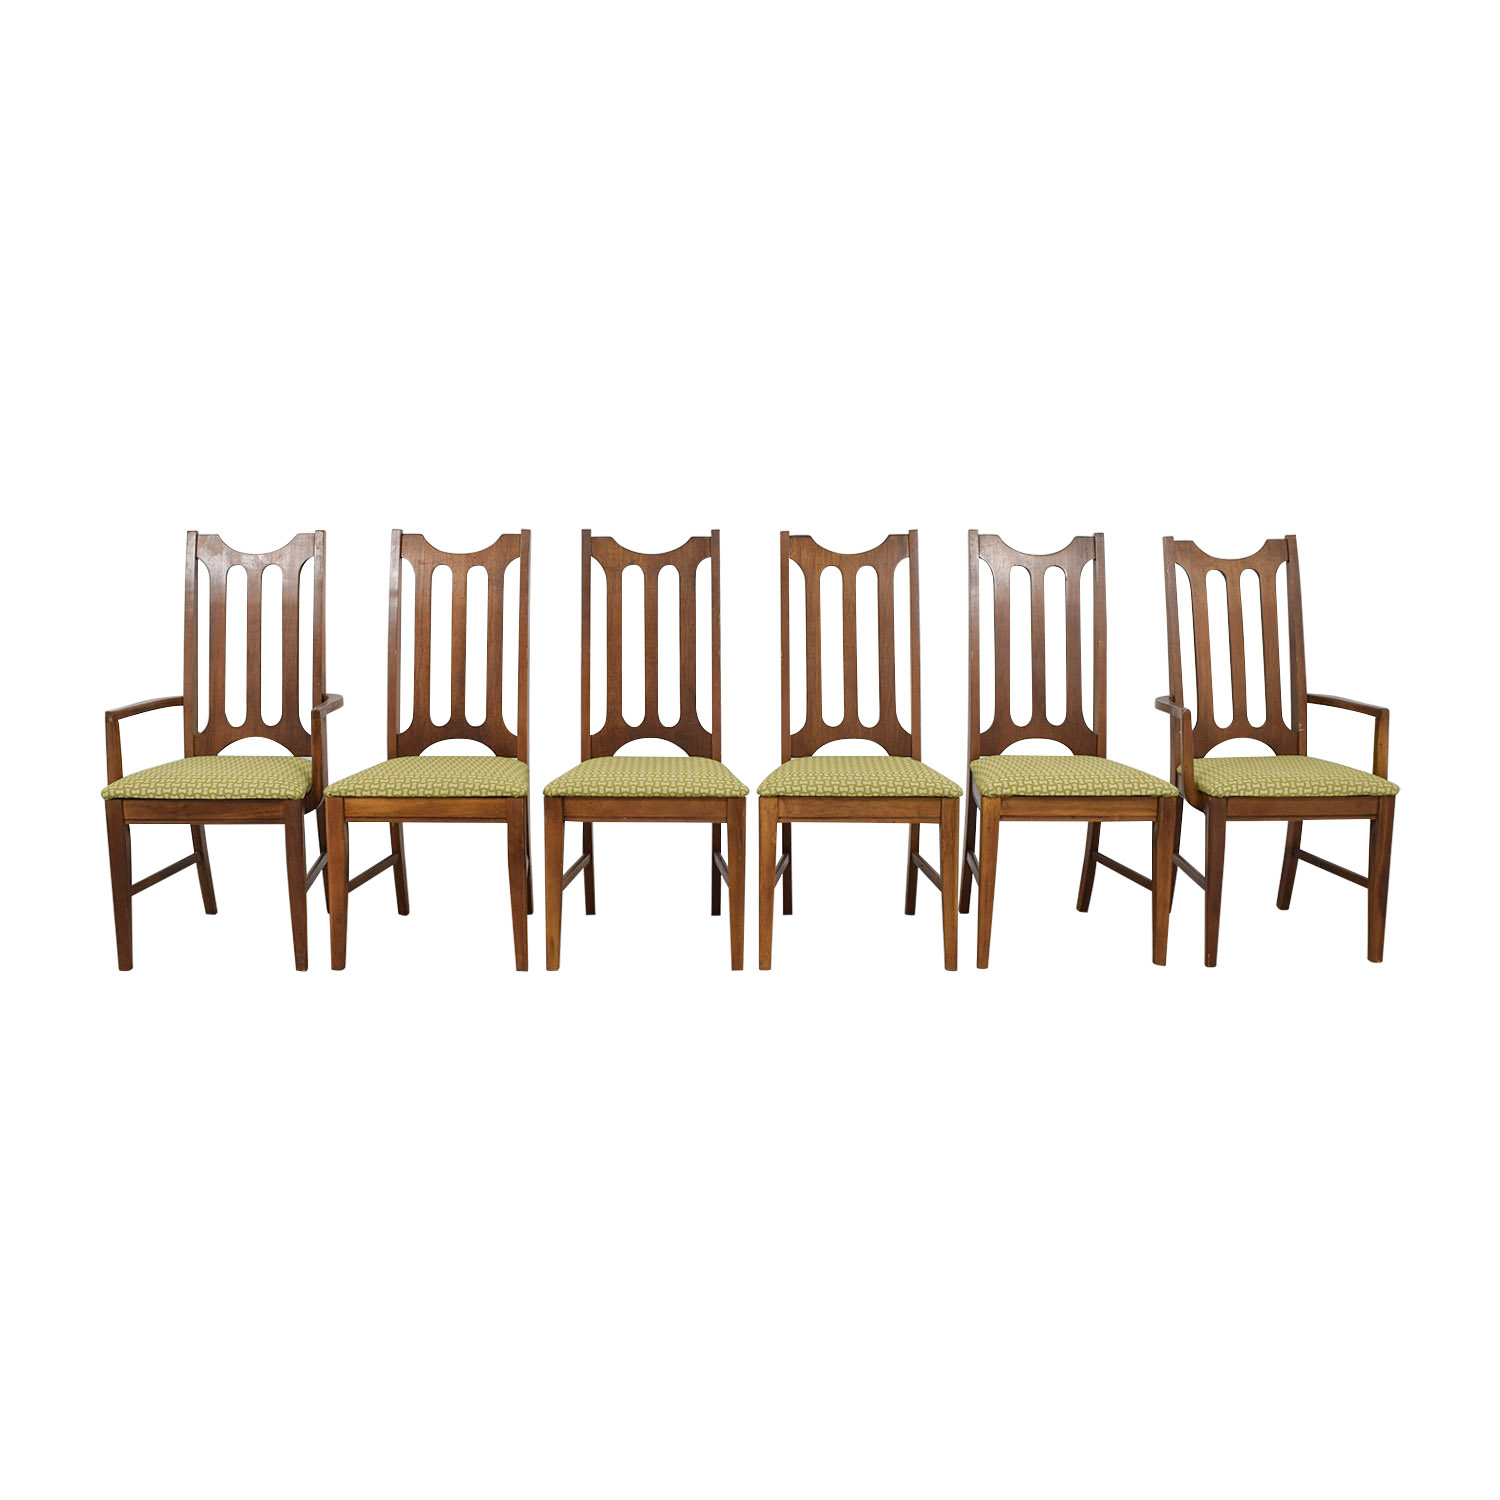 90% OFF - Bassett Furniture Bassett Furniture Mid-Century Green Upholstered  Dining Chairs / Chairs